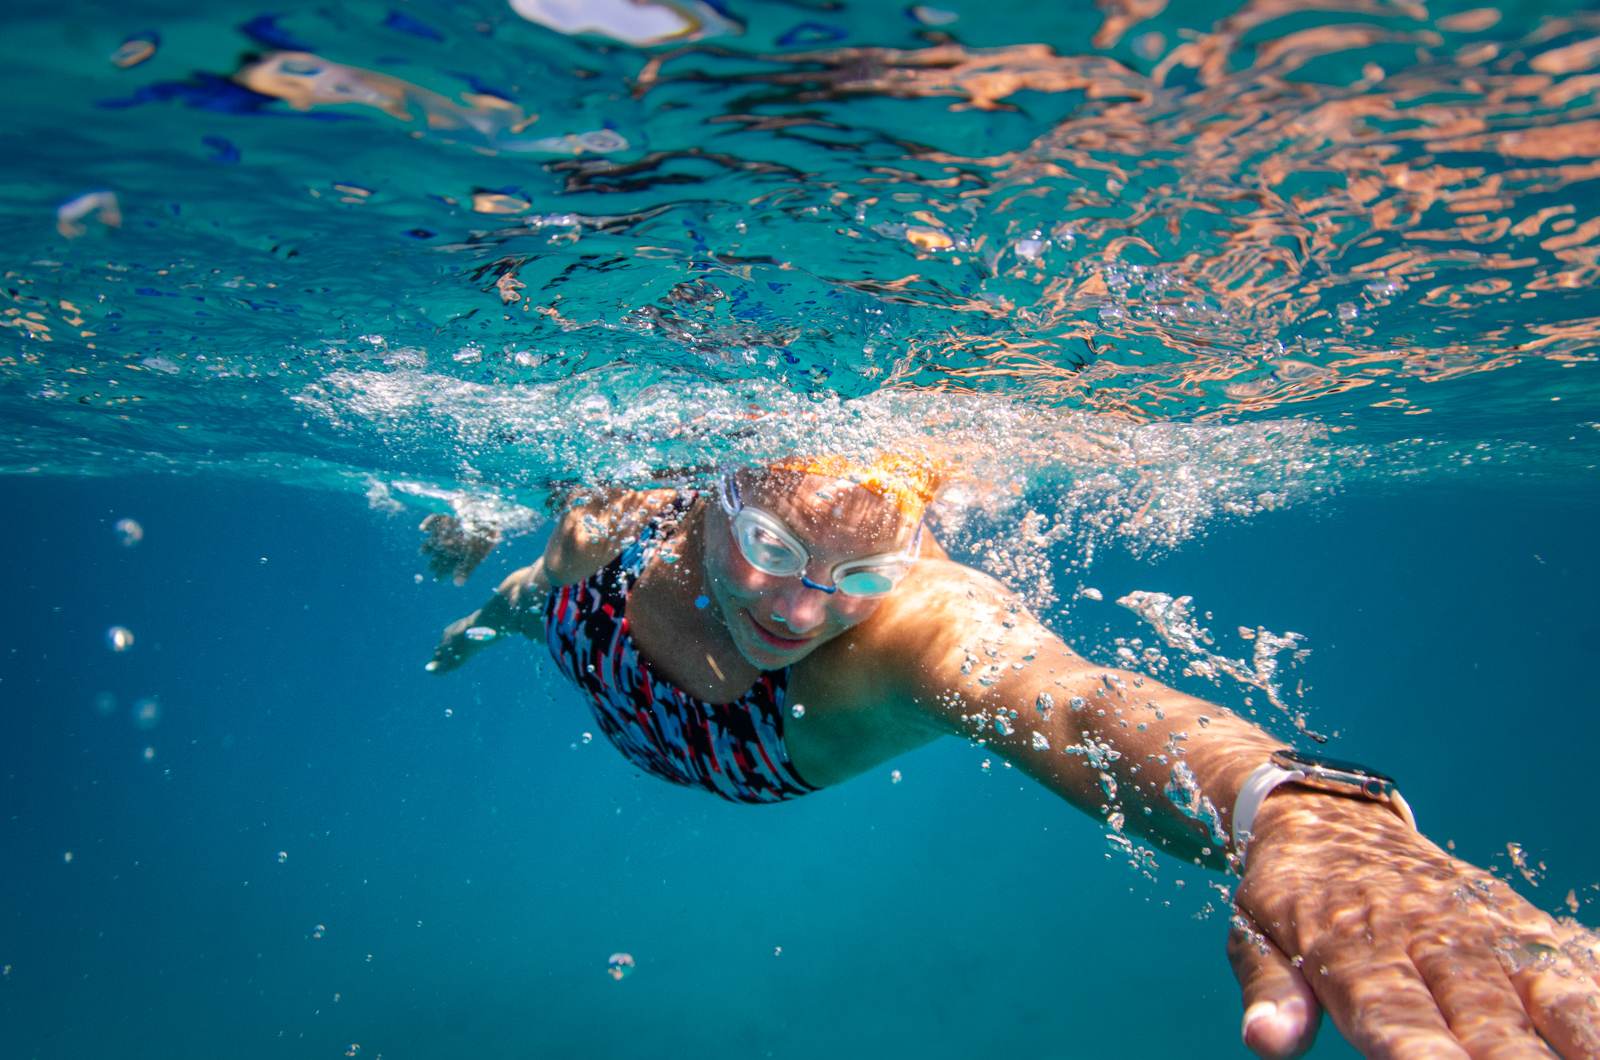 Heather Perry's underwater image of a swimmer cutting through the water from straight on